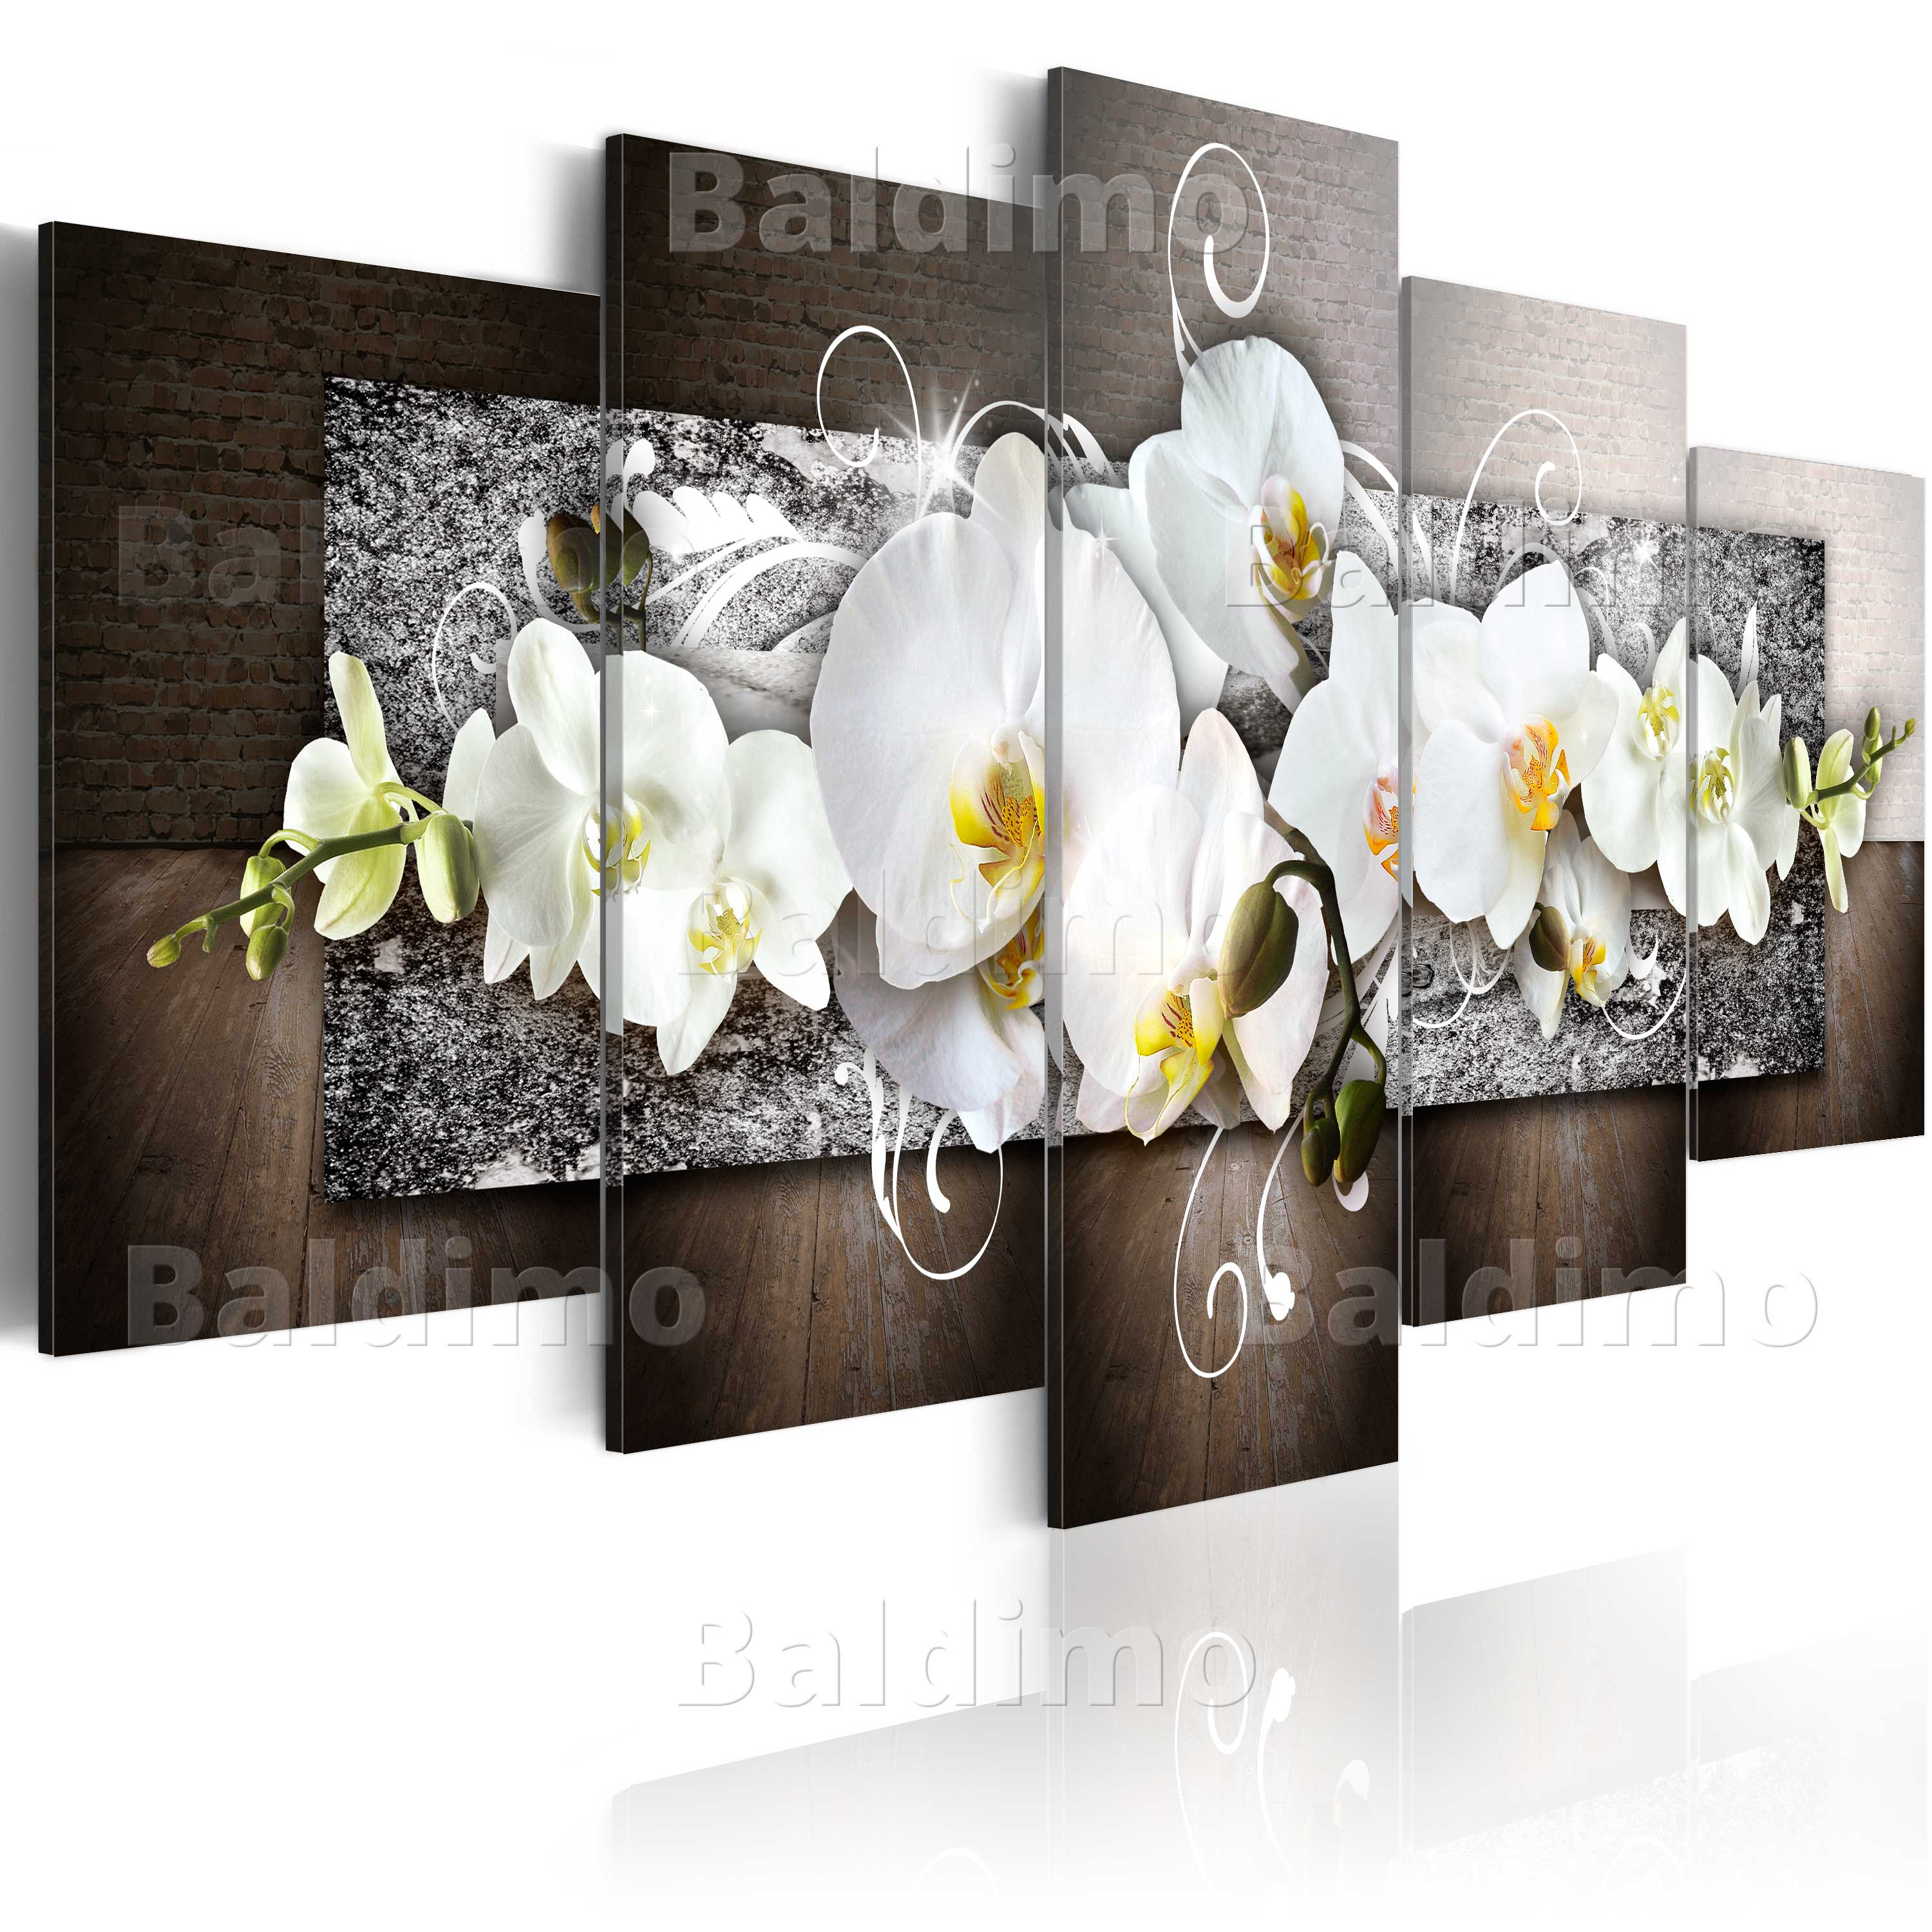 large canvas wall art print image picture photo. Black Bedroom Furniture Sets. Home Design Ideas